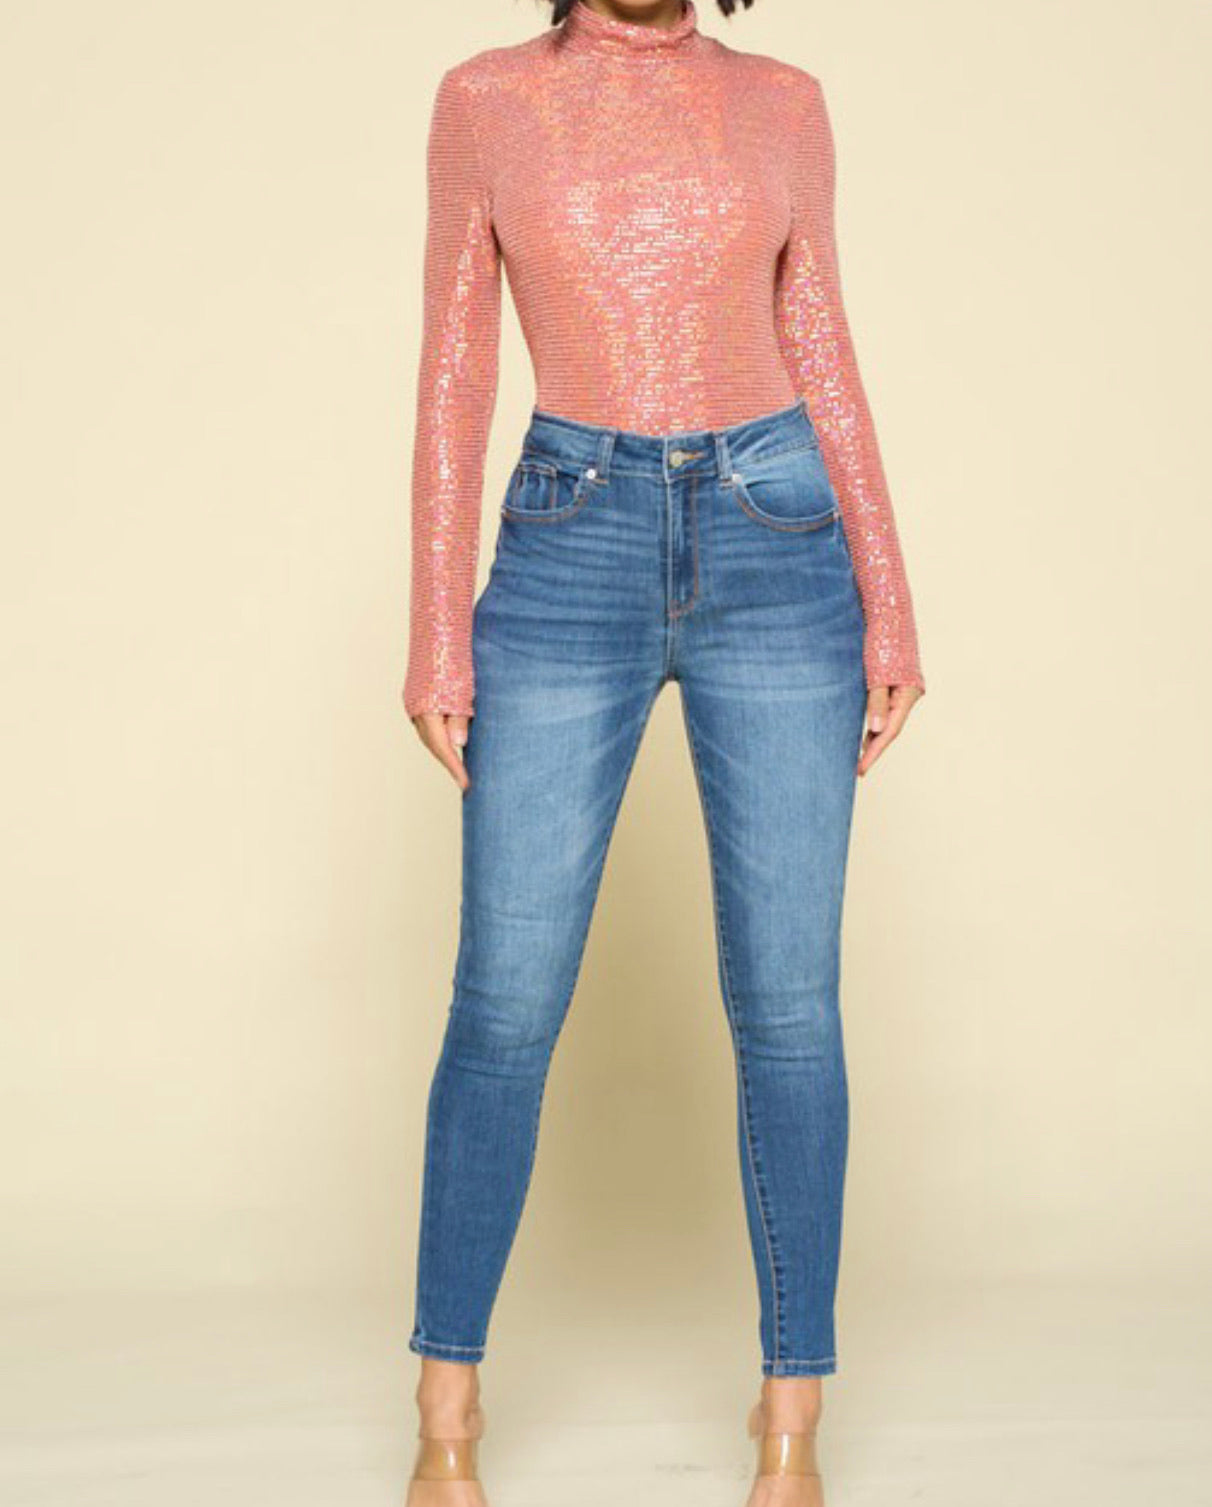 Stand Out | Sequin Bodysuit | Shipping 2/6